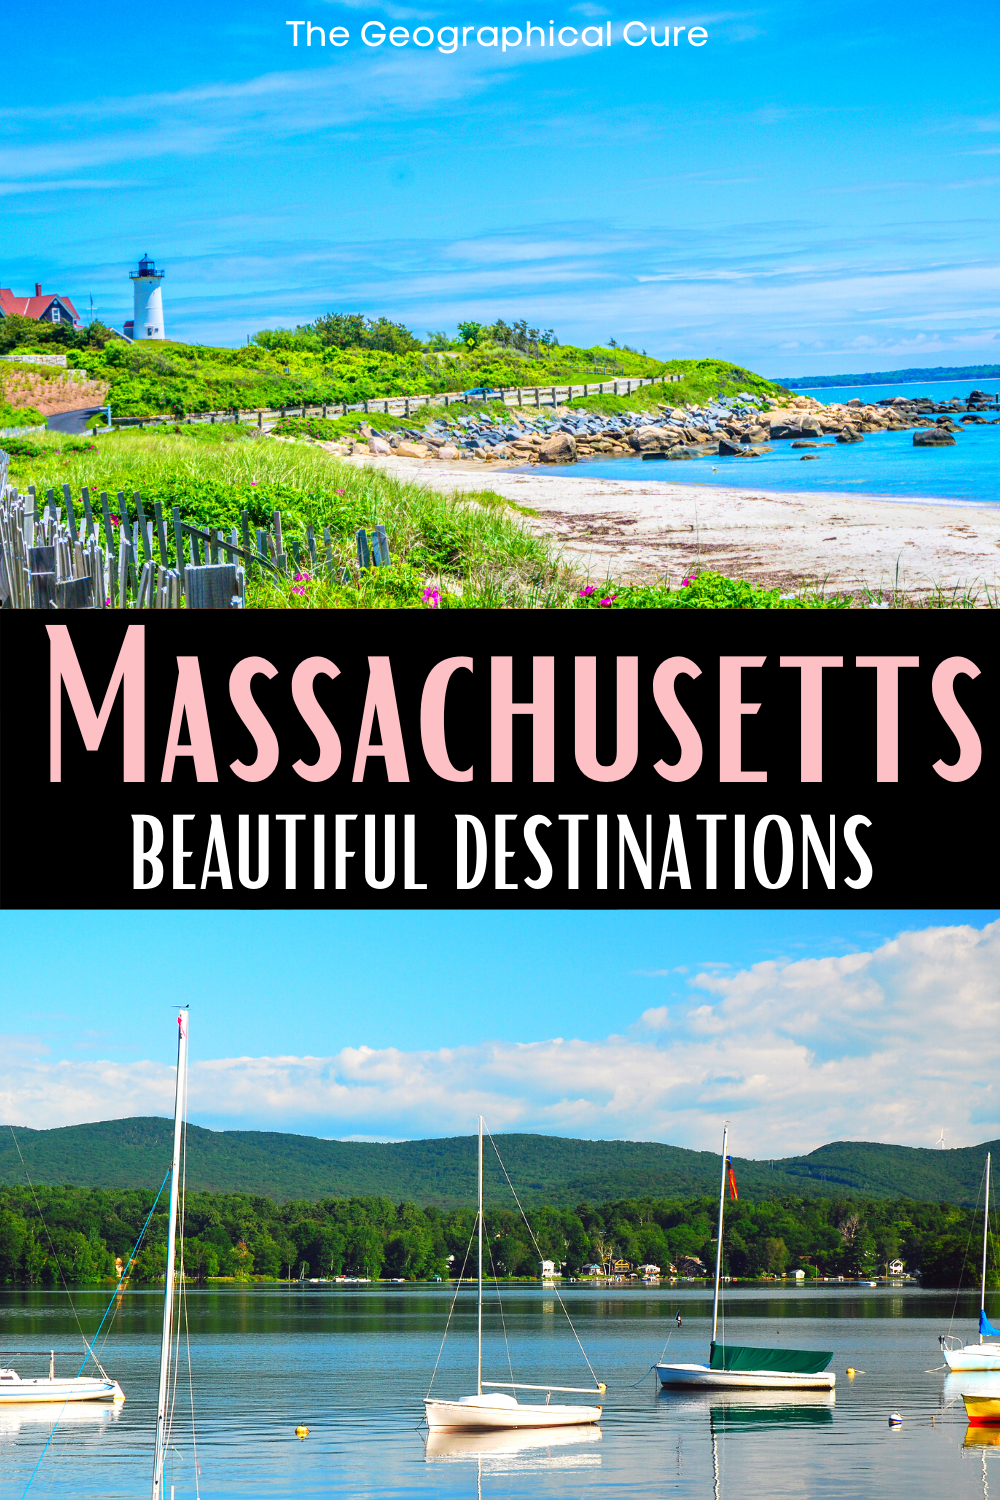 ultimate guide to the best destinations in Massachusetts